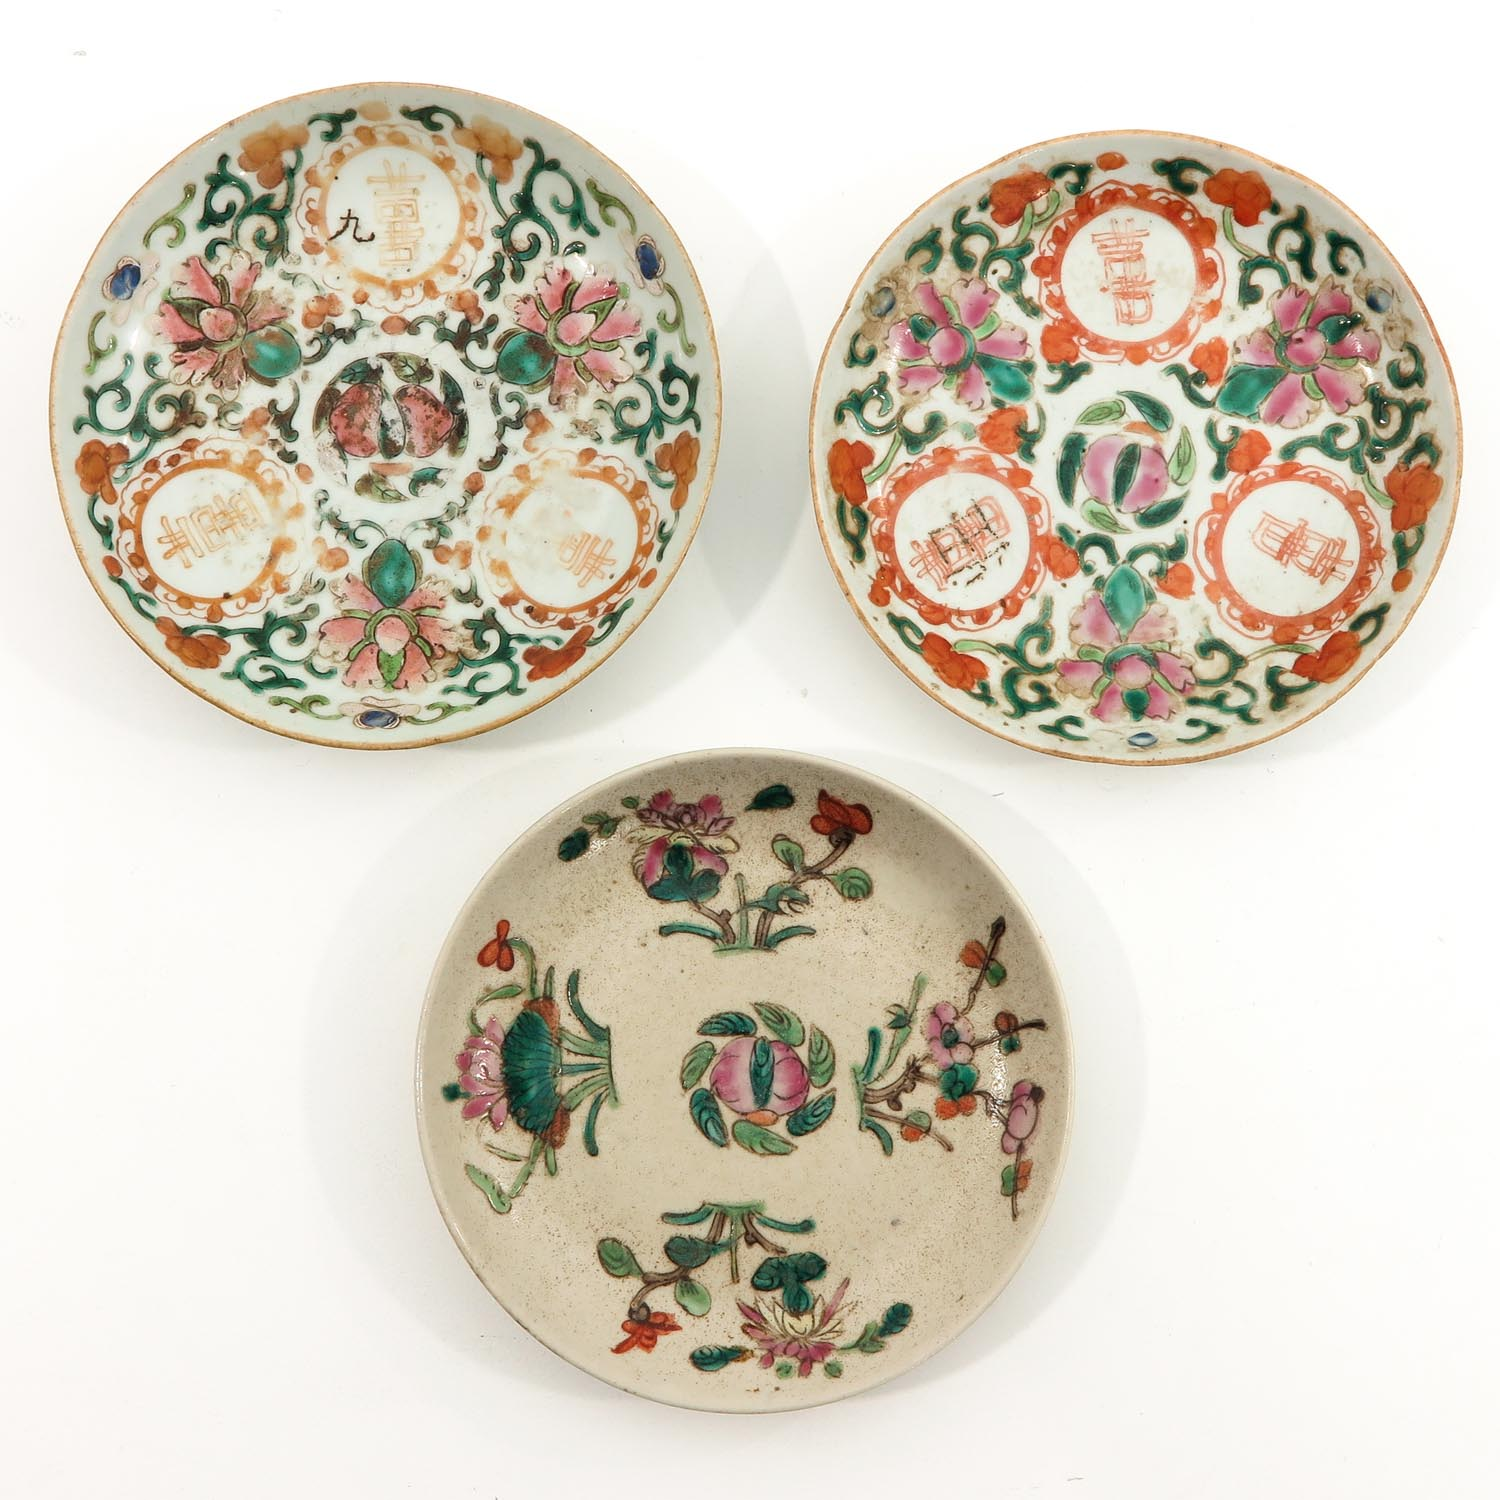 A Collection of 10 Polychrome Decor Plates - Image 5 of 10